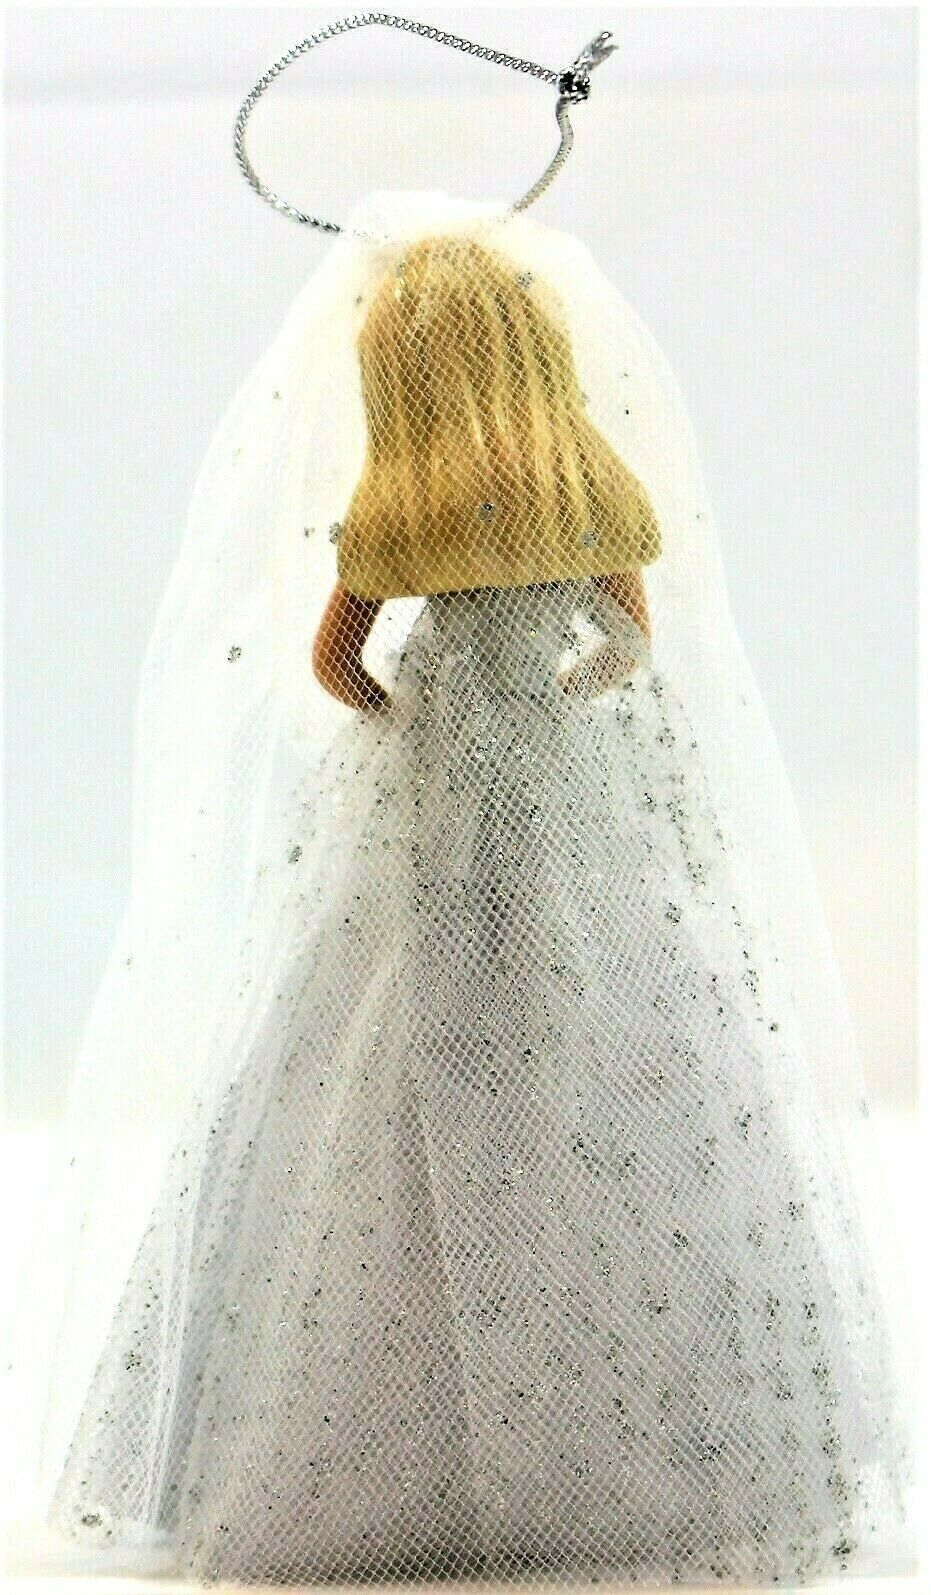 Barbie Millennium Bride Porcelain Ornament 2000 Avon Mattel